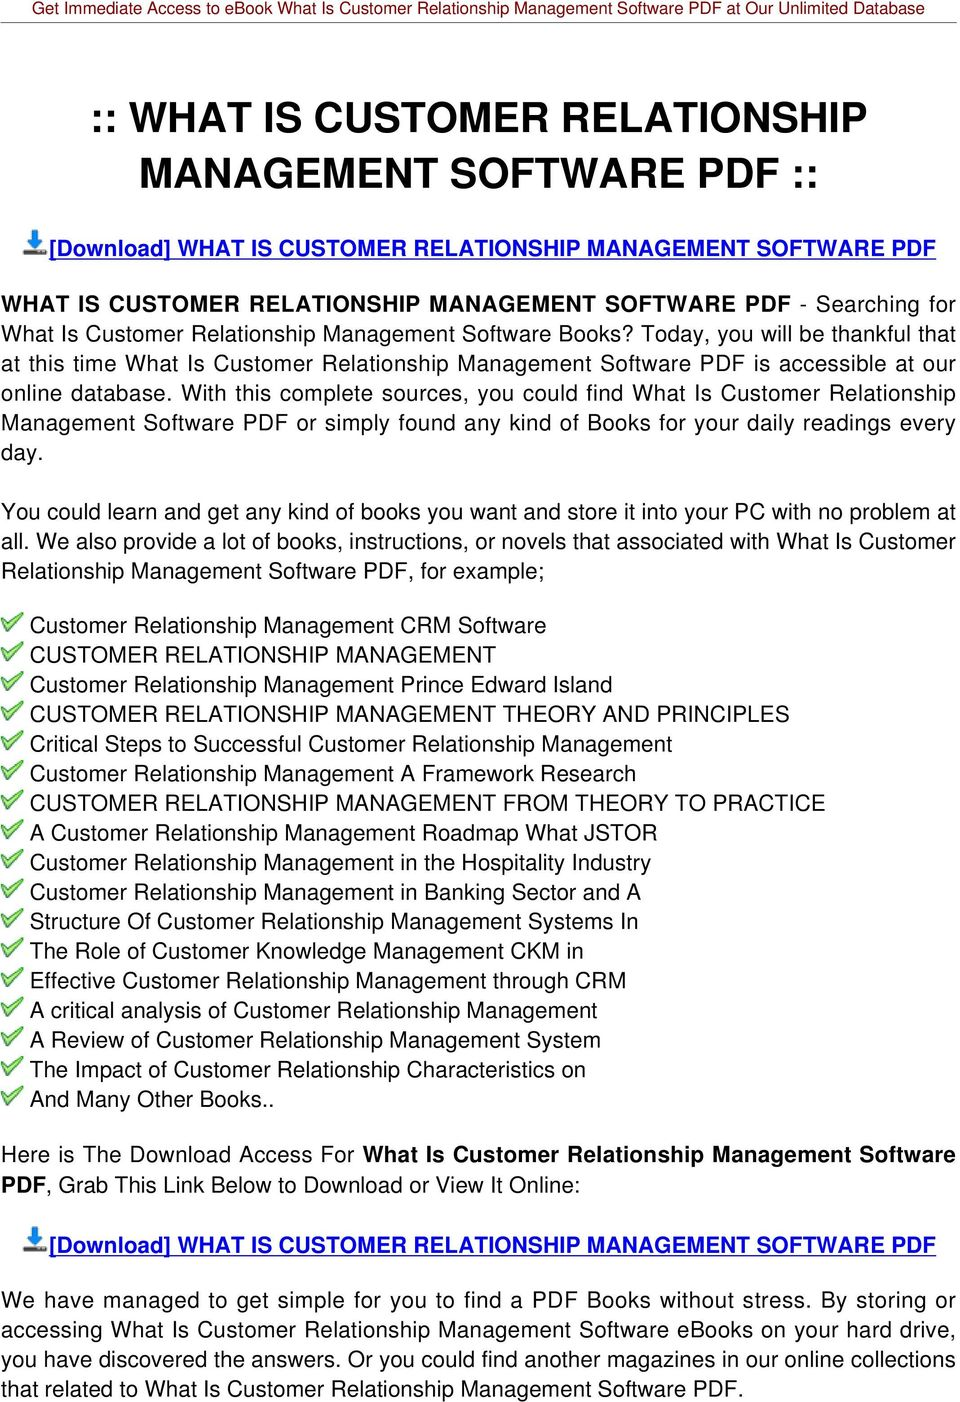 With this complete sources, you could find What Is Customer Relationship Management Software PDF or simply found any kind of Books for your daily readings every day.